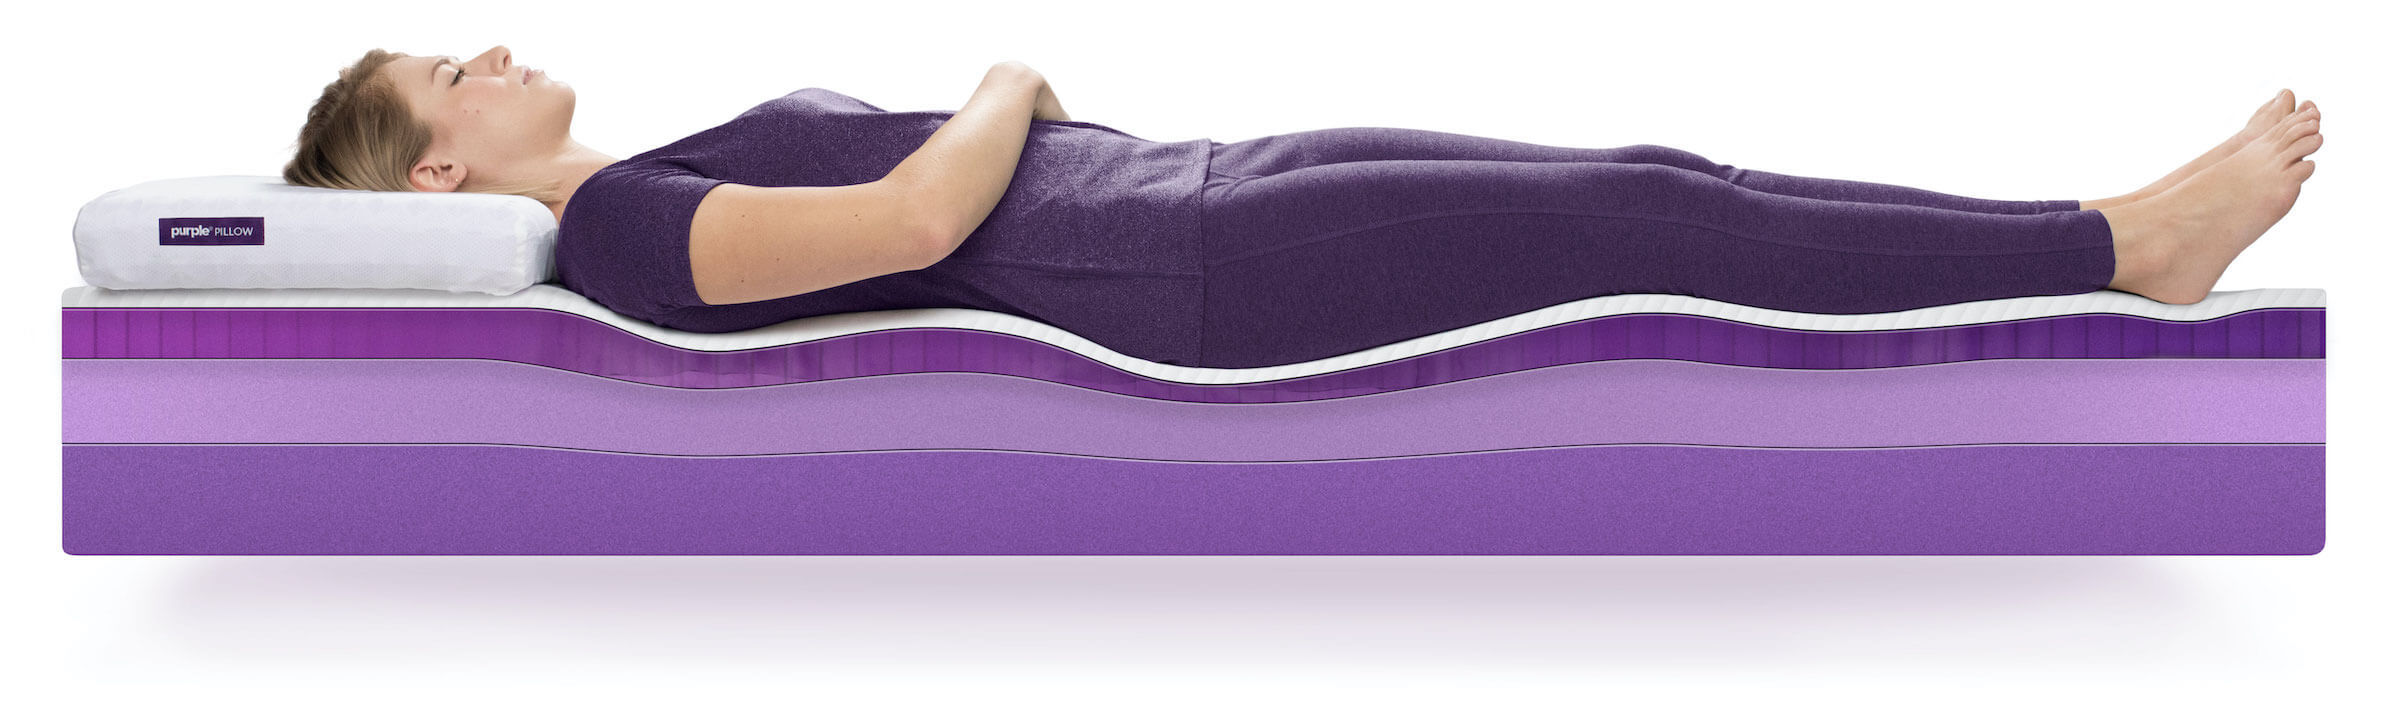 Why Choose the Purple Mattress?